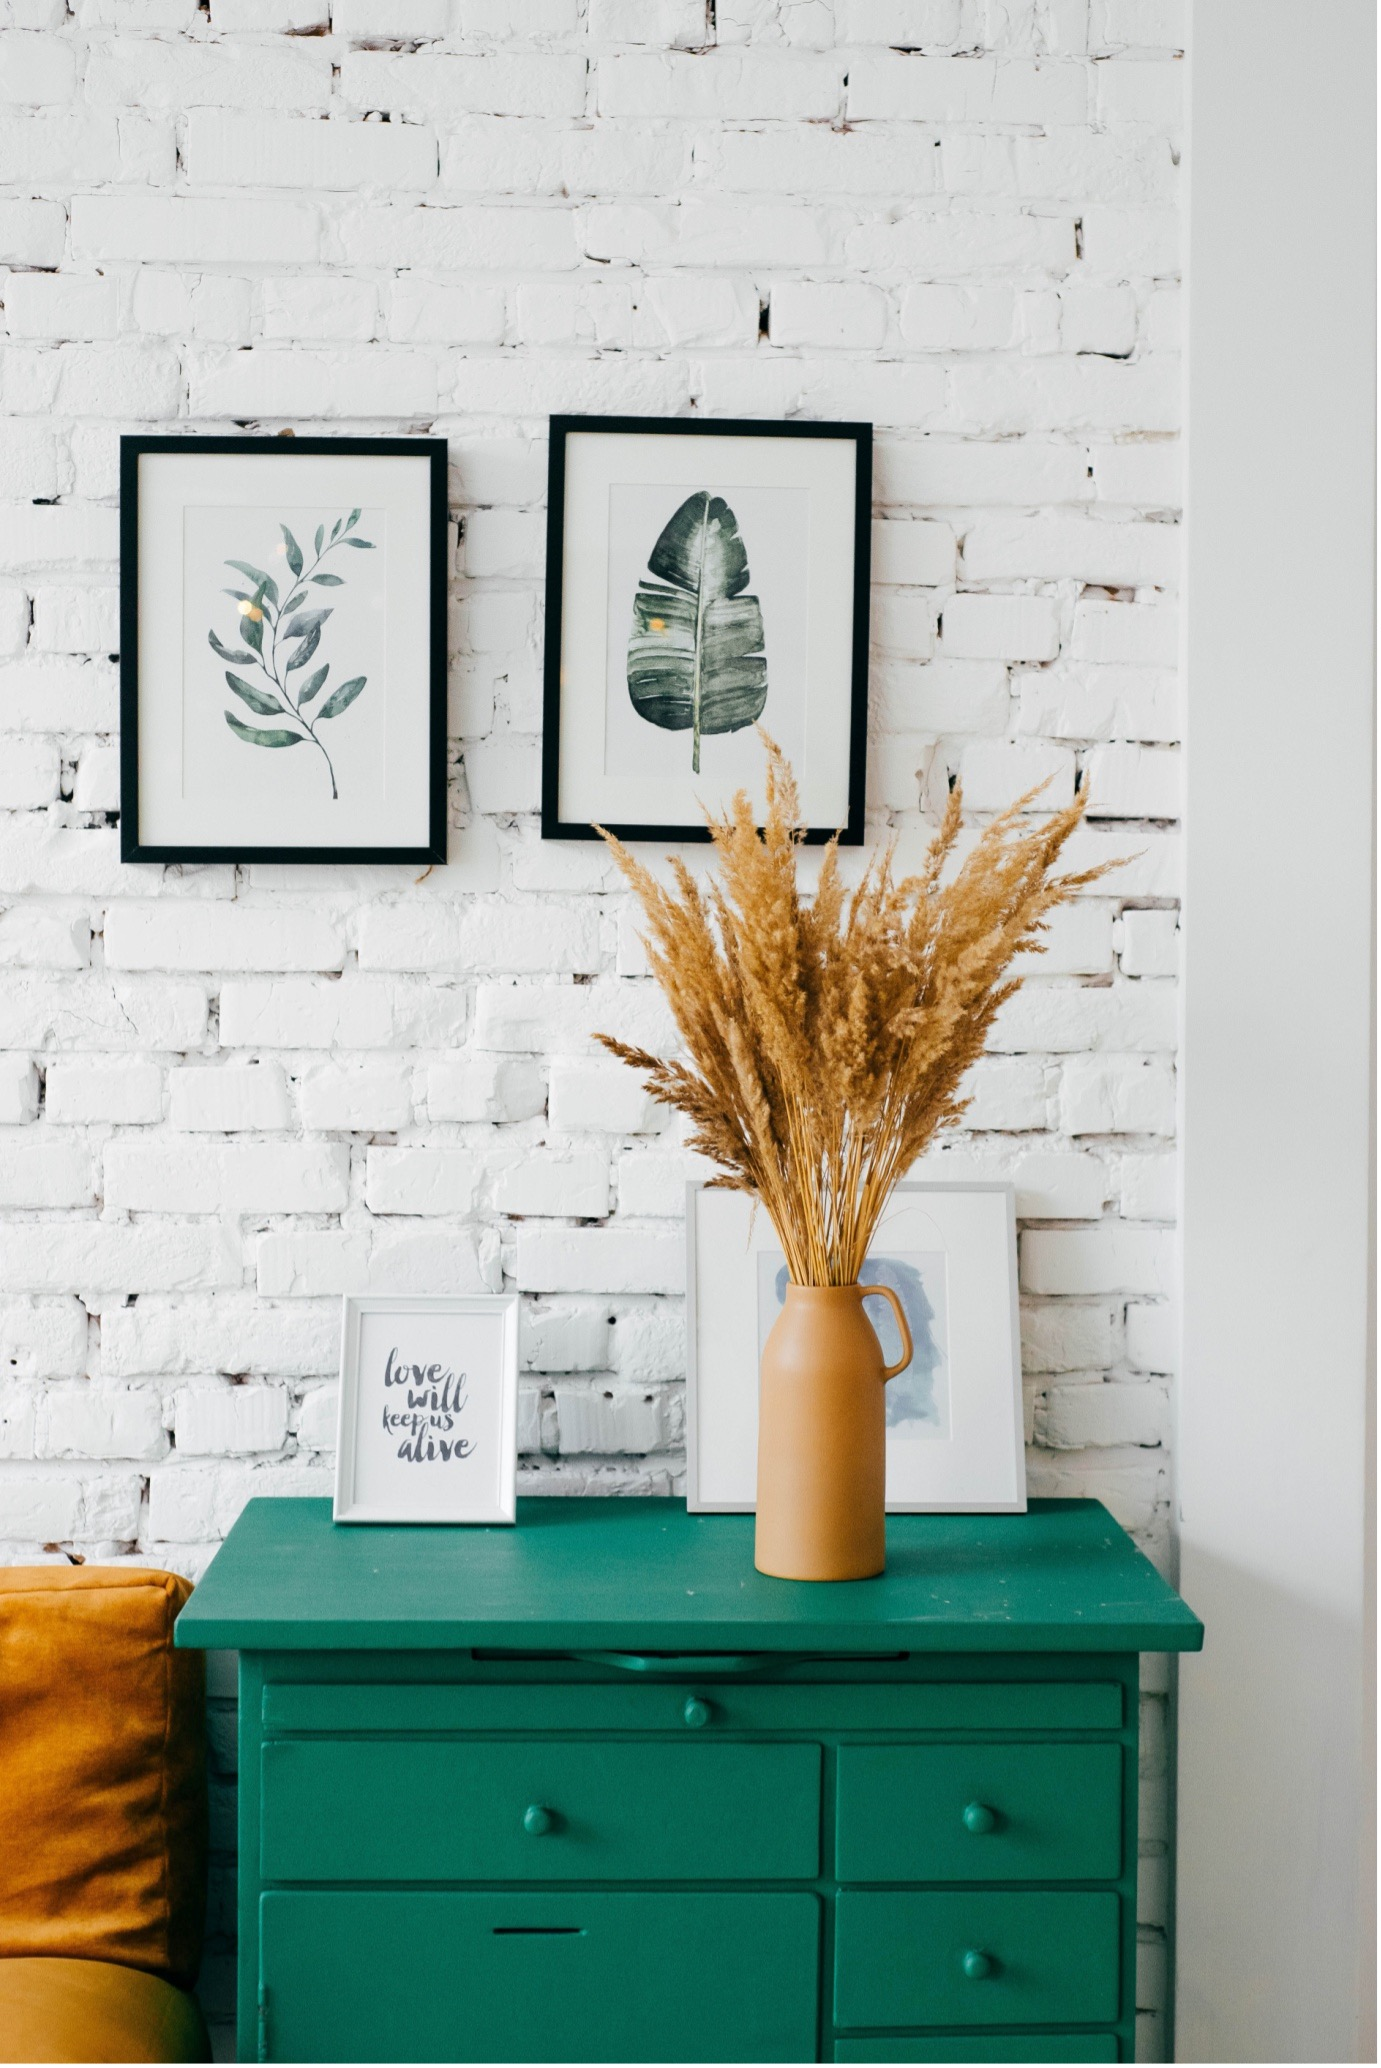 Bed side table painted green with white brick wall behind it.